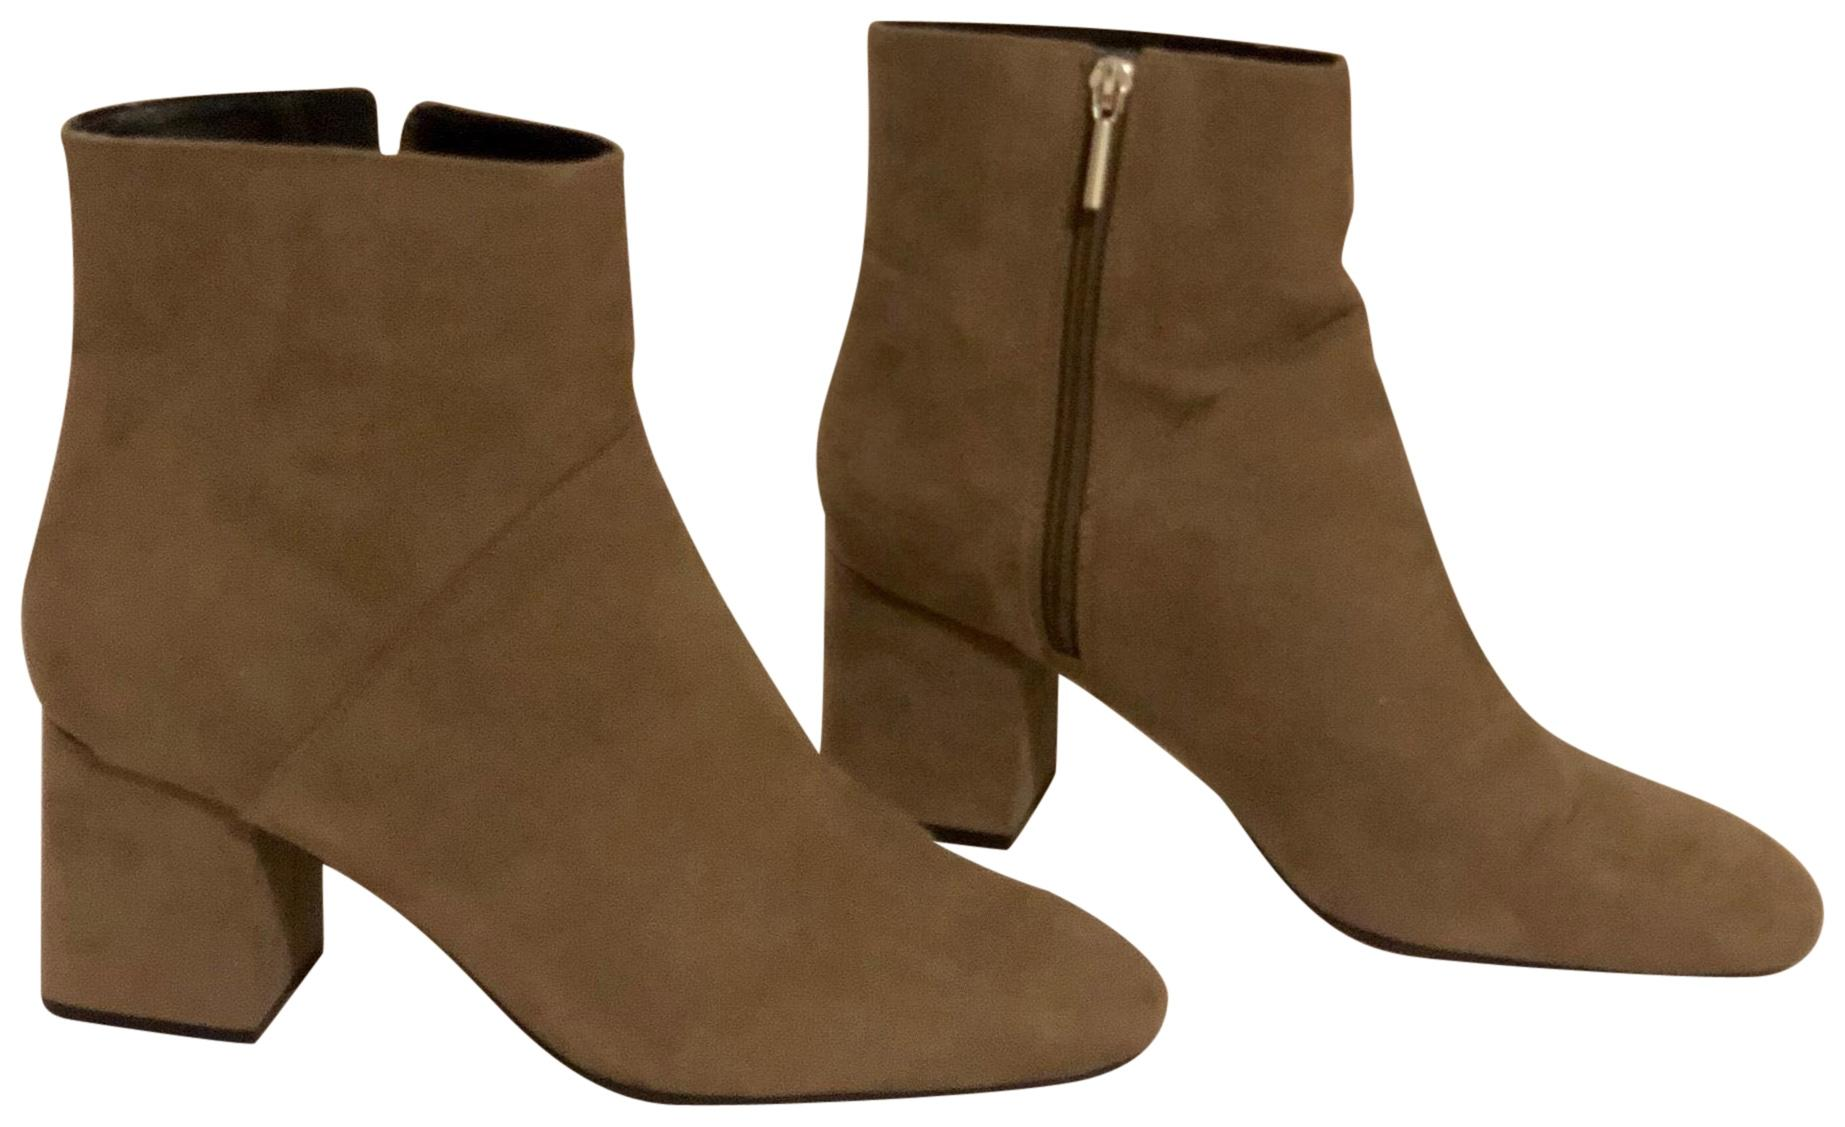 0a2d5190bbc Zara Grey Suede Mid-heel Ankle Boots Booties Boots Booties Boots Booties